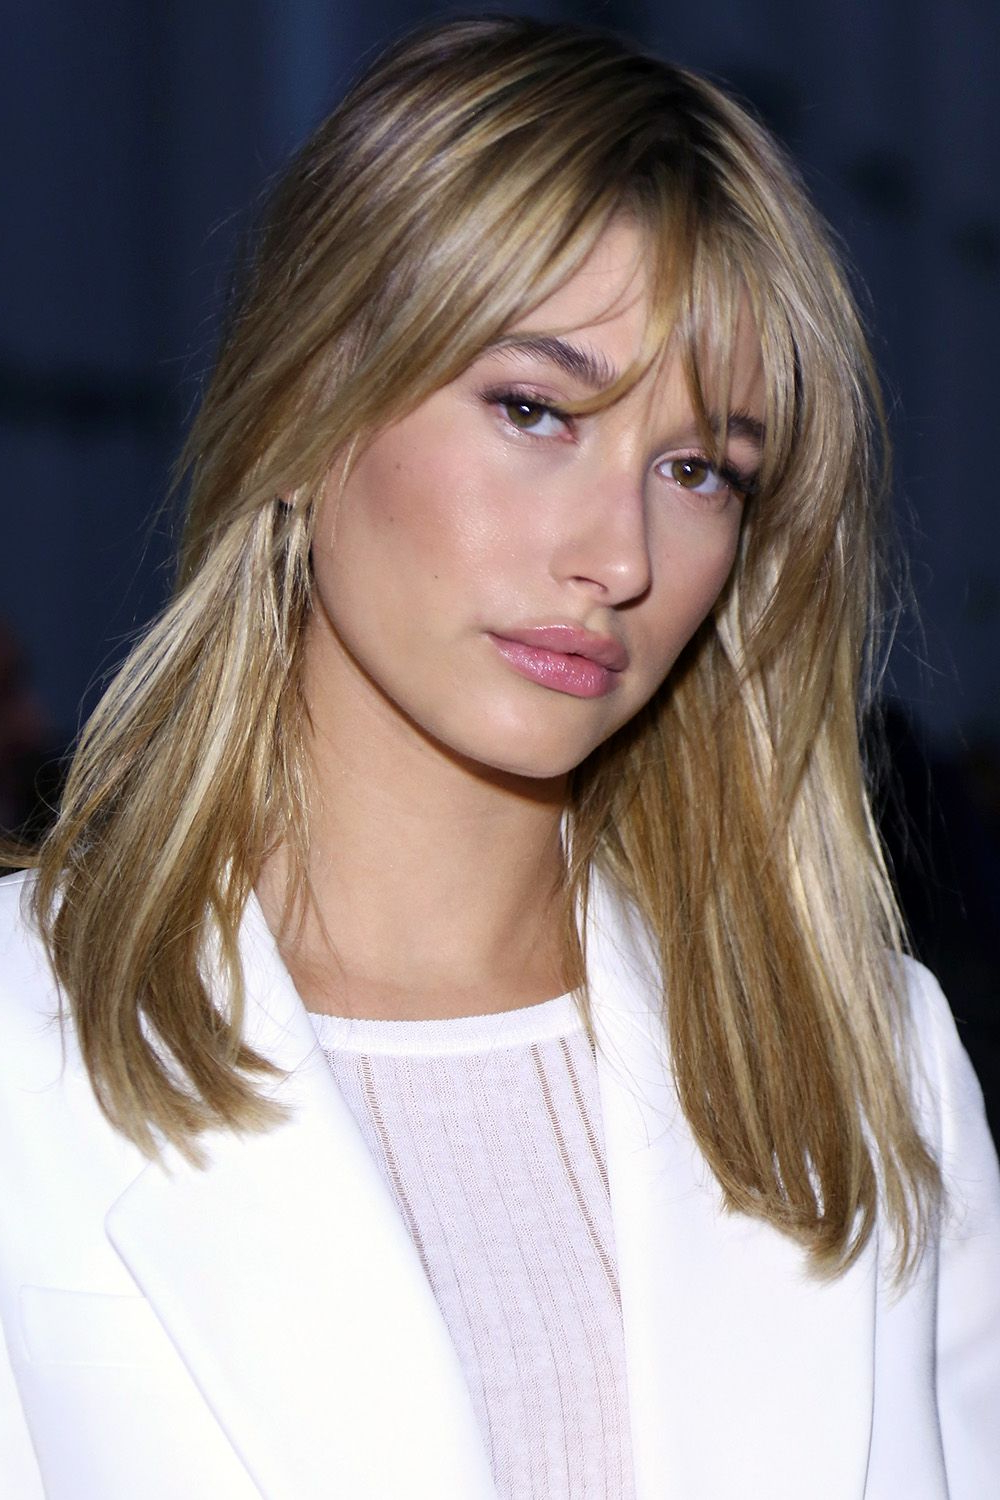 40 Best Medium Hairstyles – Celebrities With Shoulder Length Haircuts Intended For Recent Medium Hairstyles With Straight Bangs (View 18 of 20)